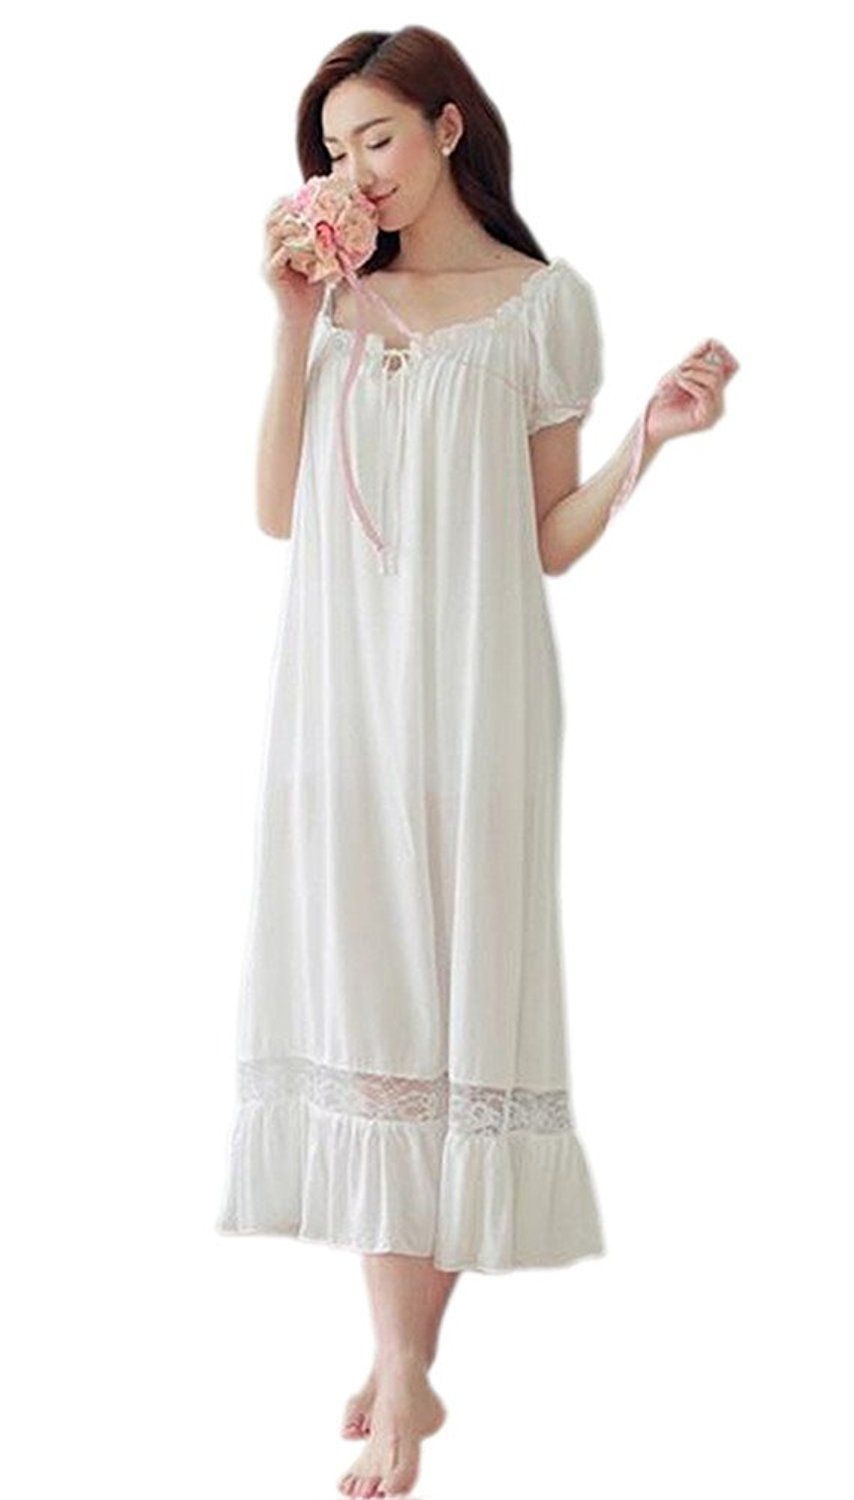 Women 100% Cotton Vintage Short Sleeve Princess Long Nightgowns (L ... f478f44b4